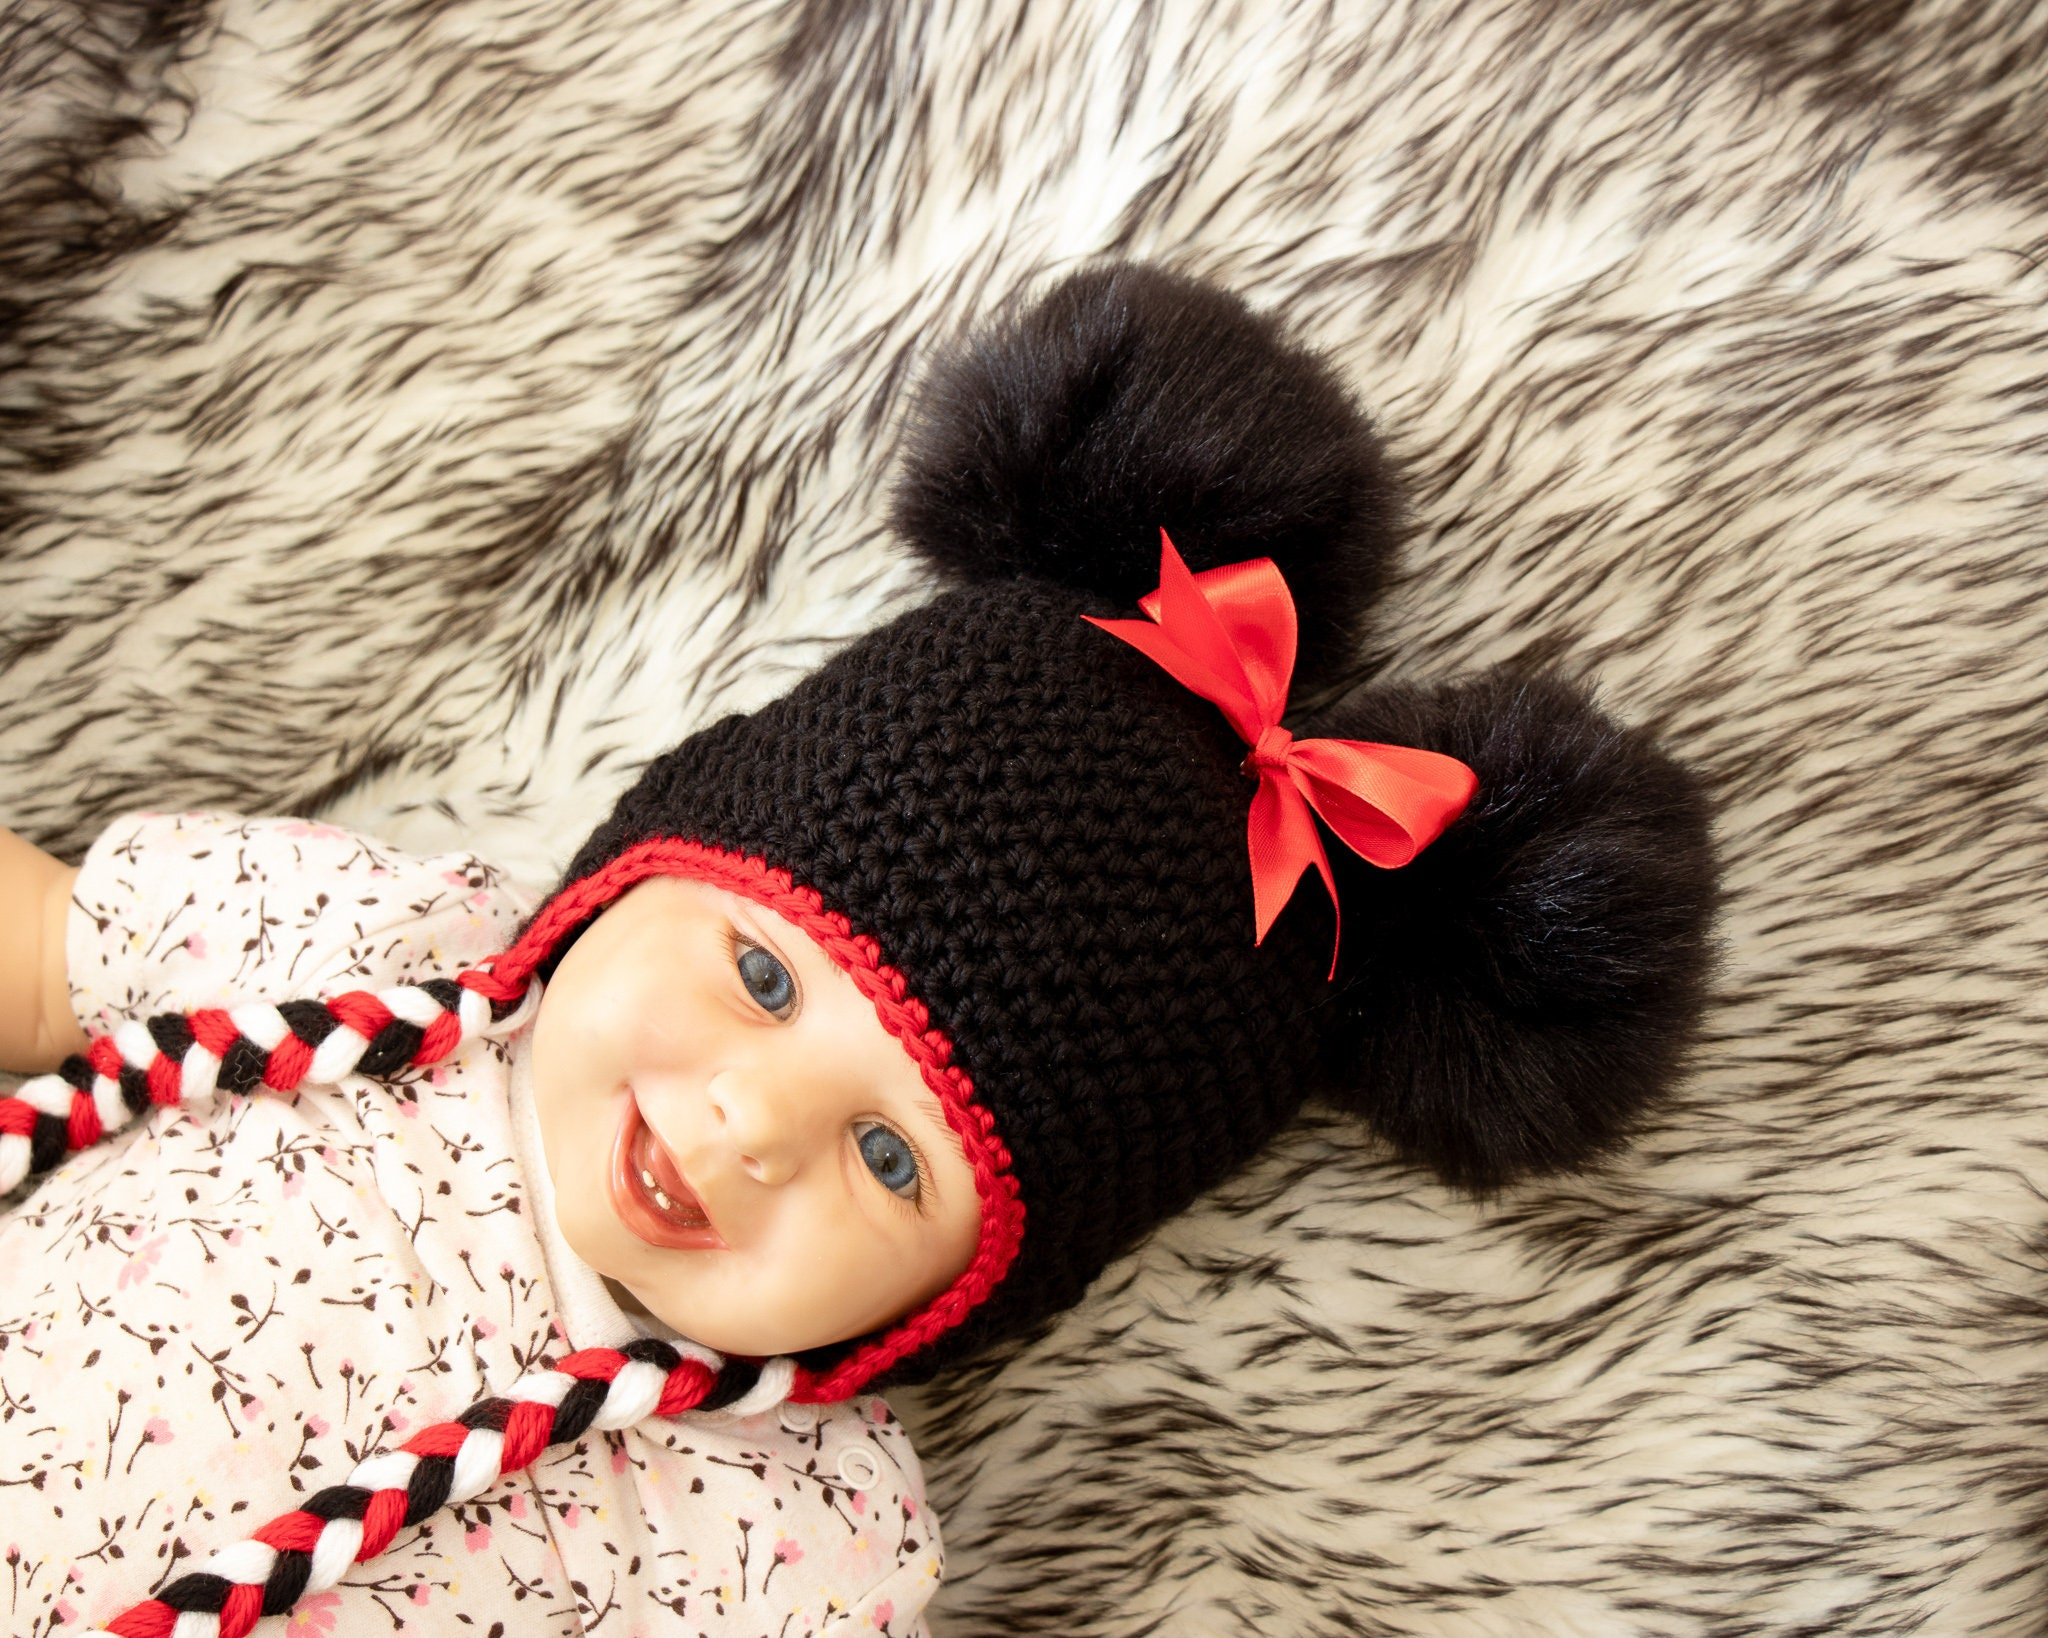 edbcca6a7c4 Baby girl double pompom hat with bow - Minnie Mouse hat - Baby girl ...